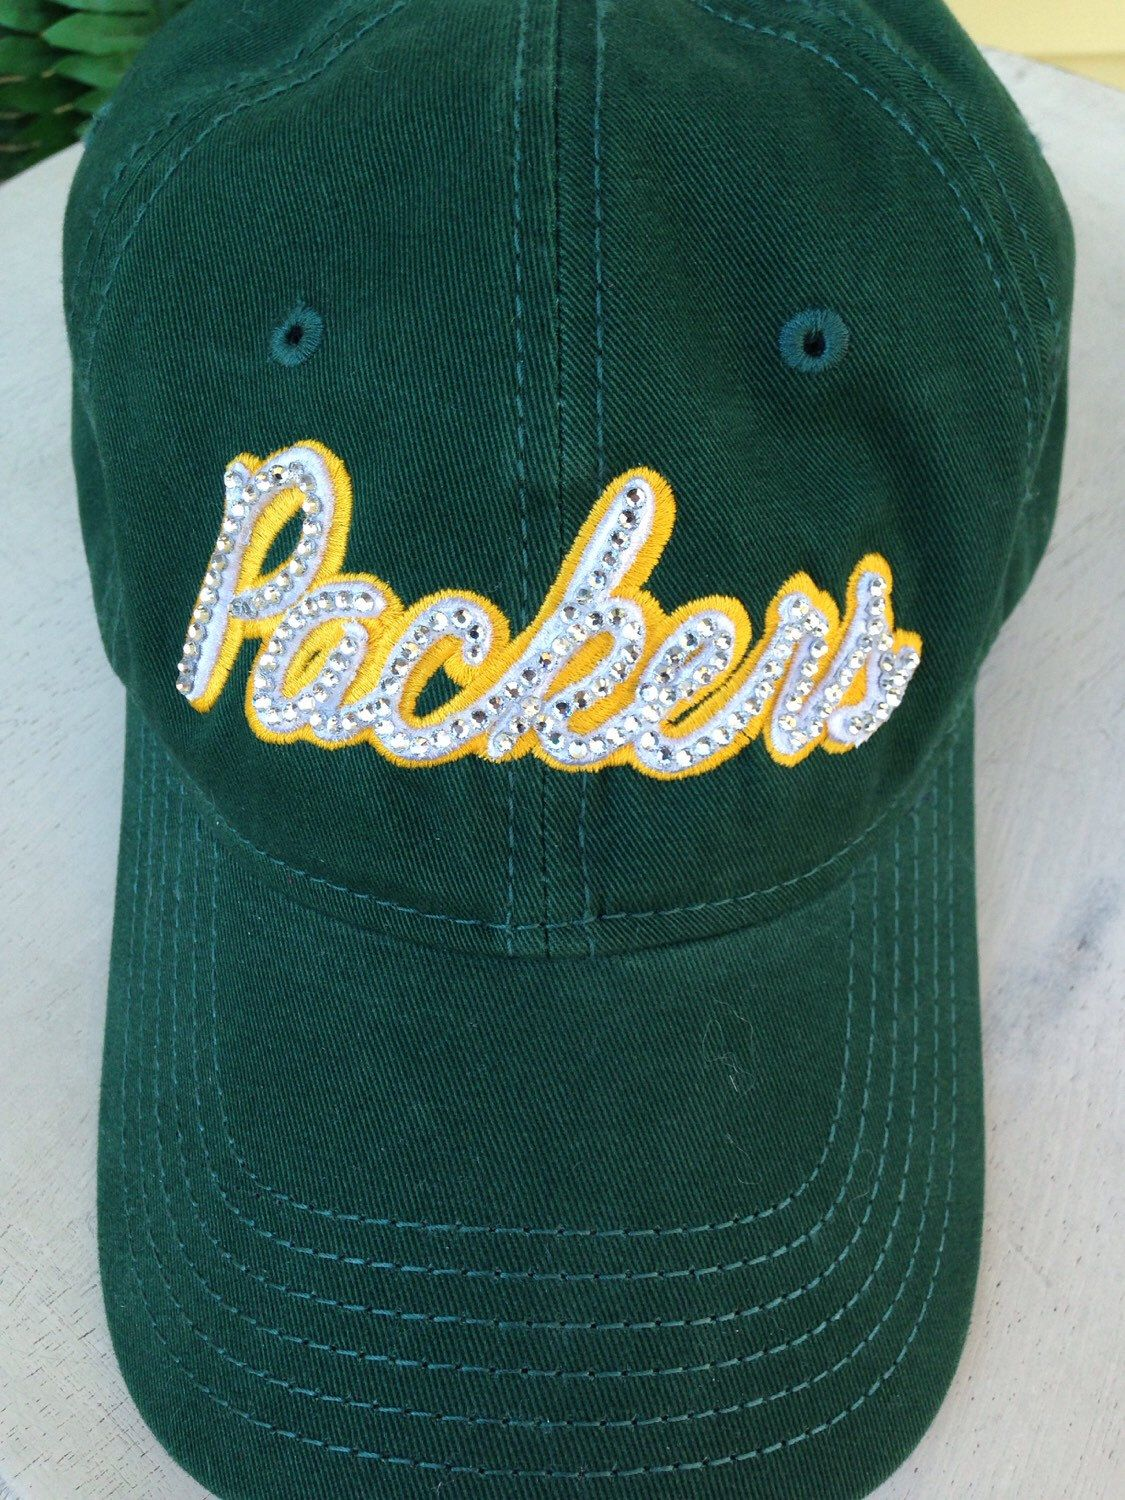 Bling hat, Packers, green bay, green